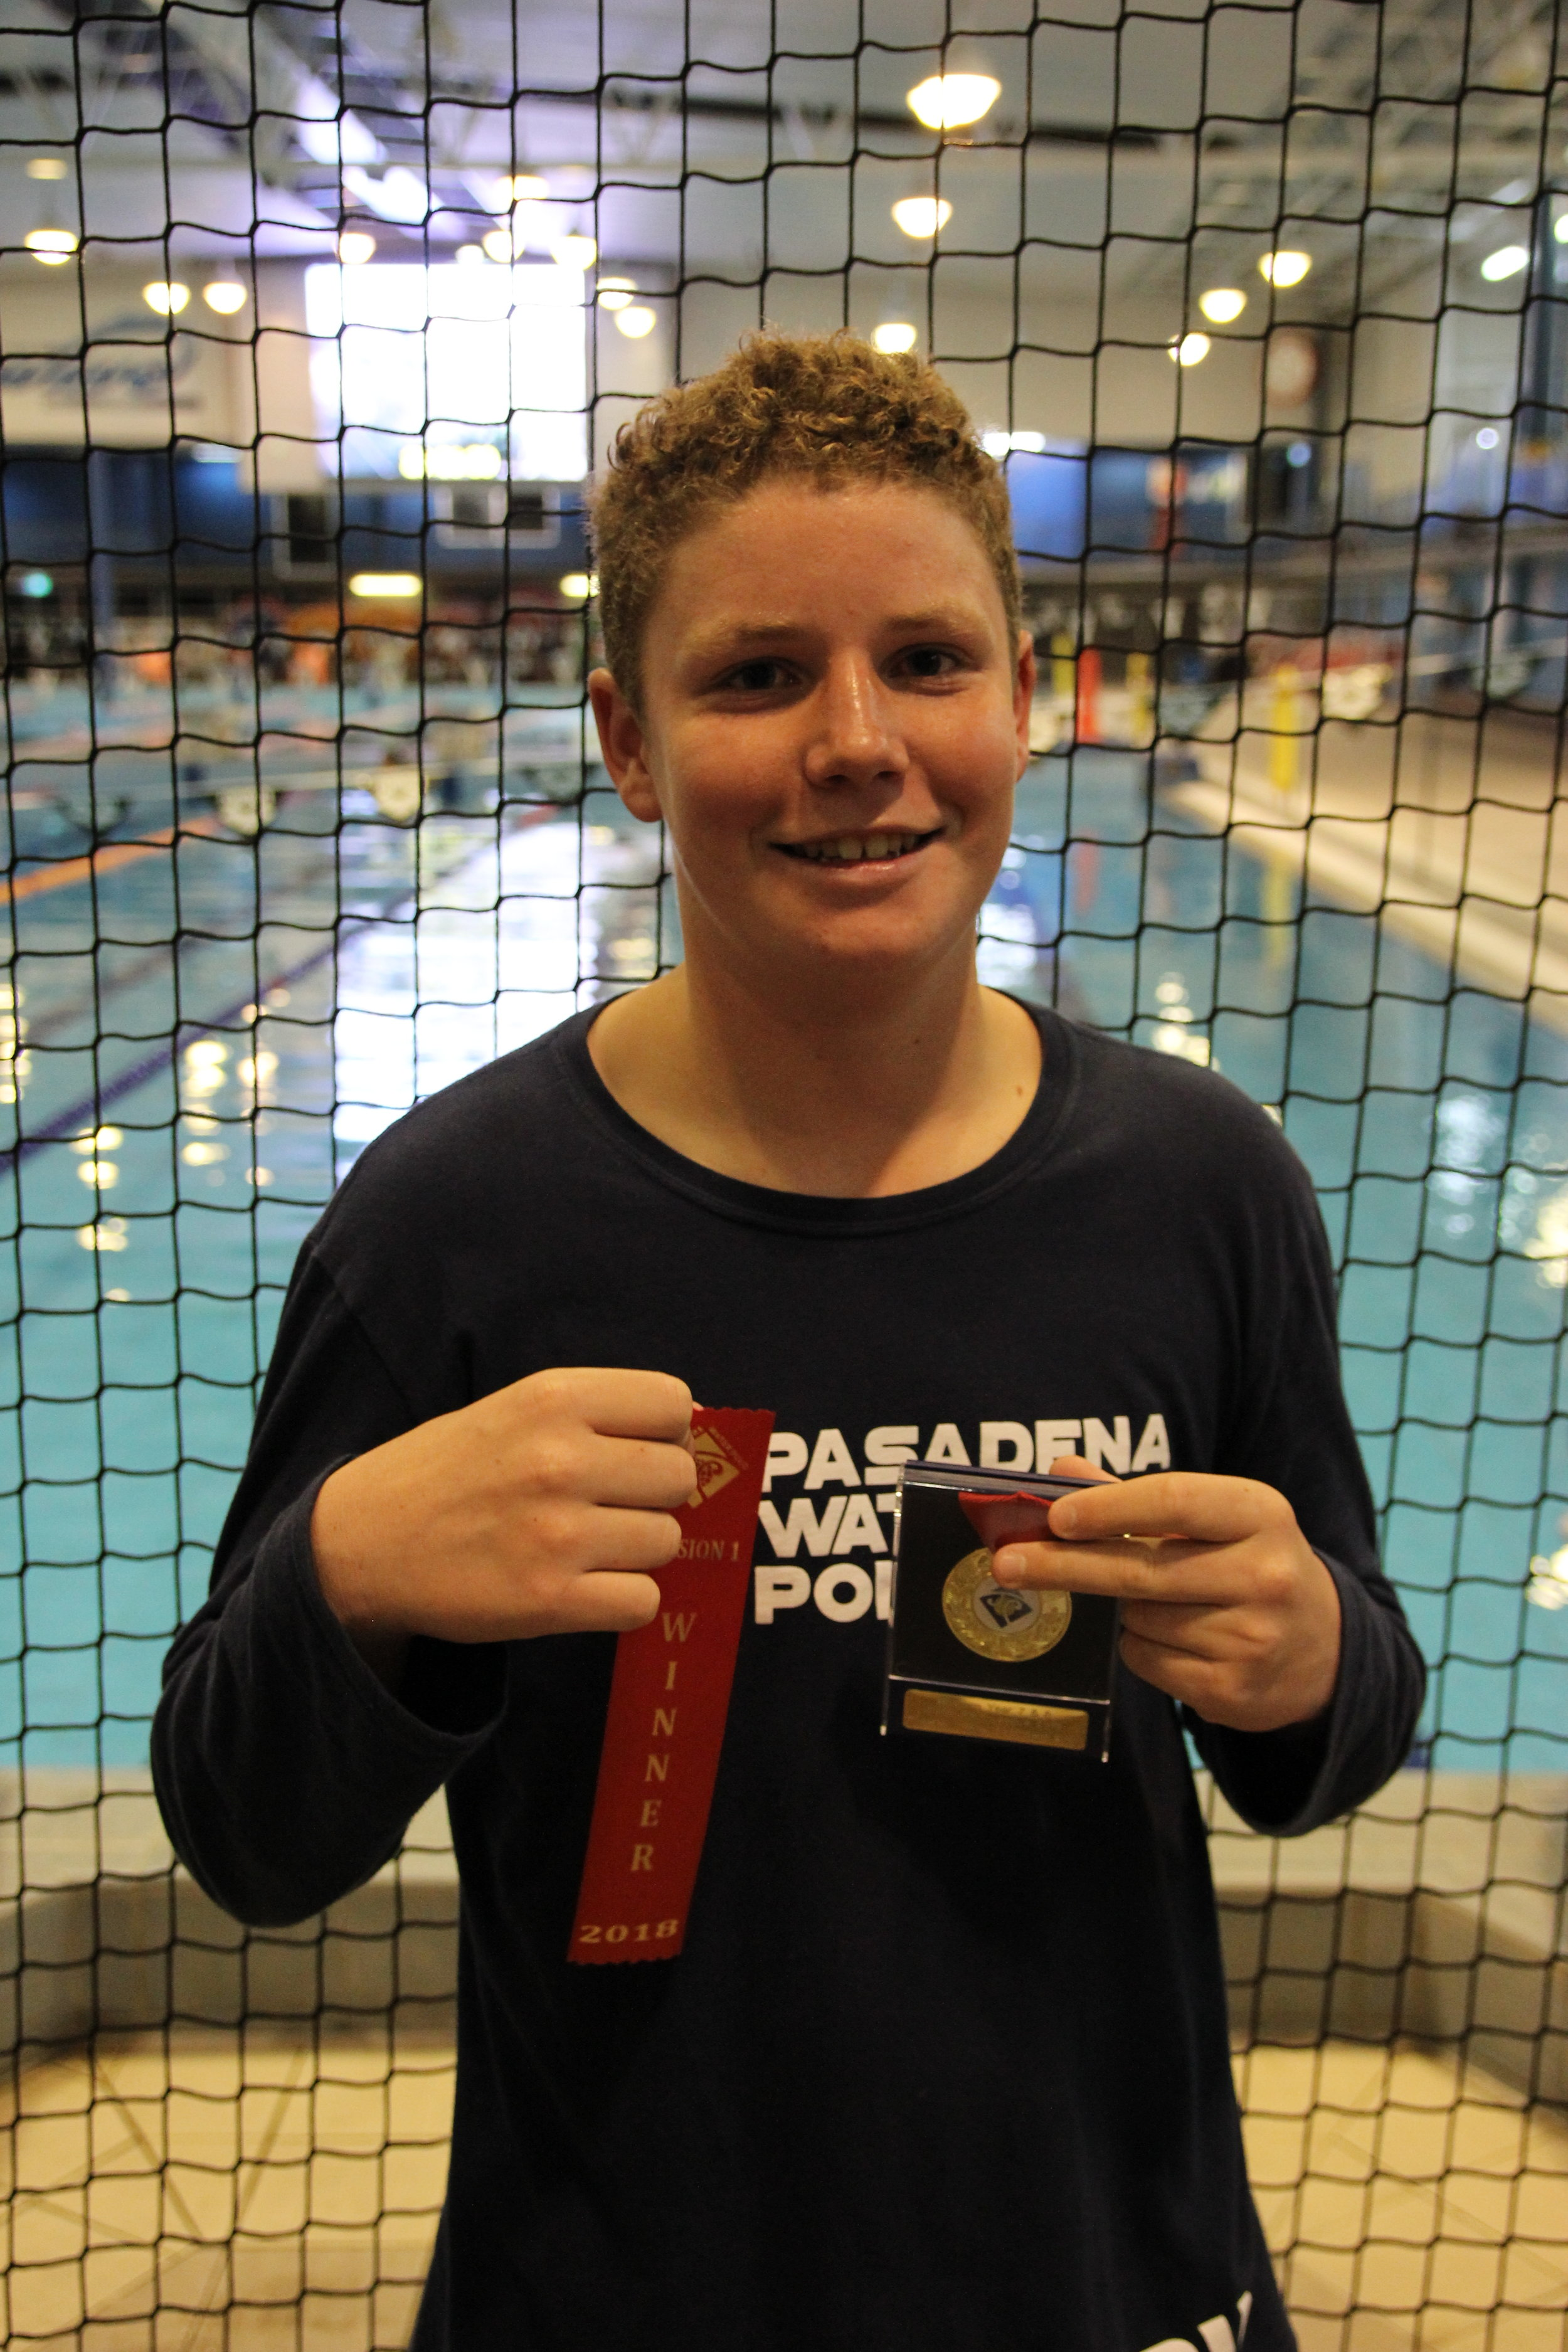 Most Promising Boy – Ben Watkinson from Pasadena Mana